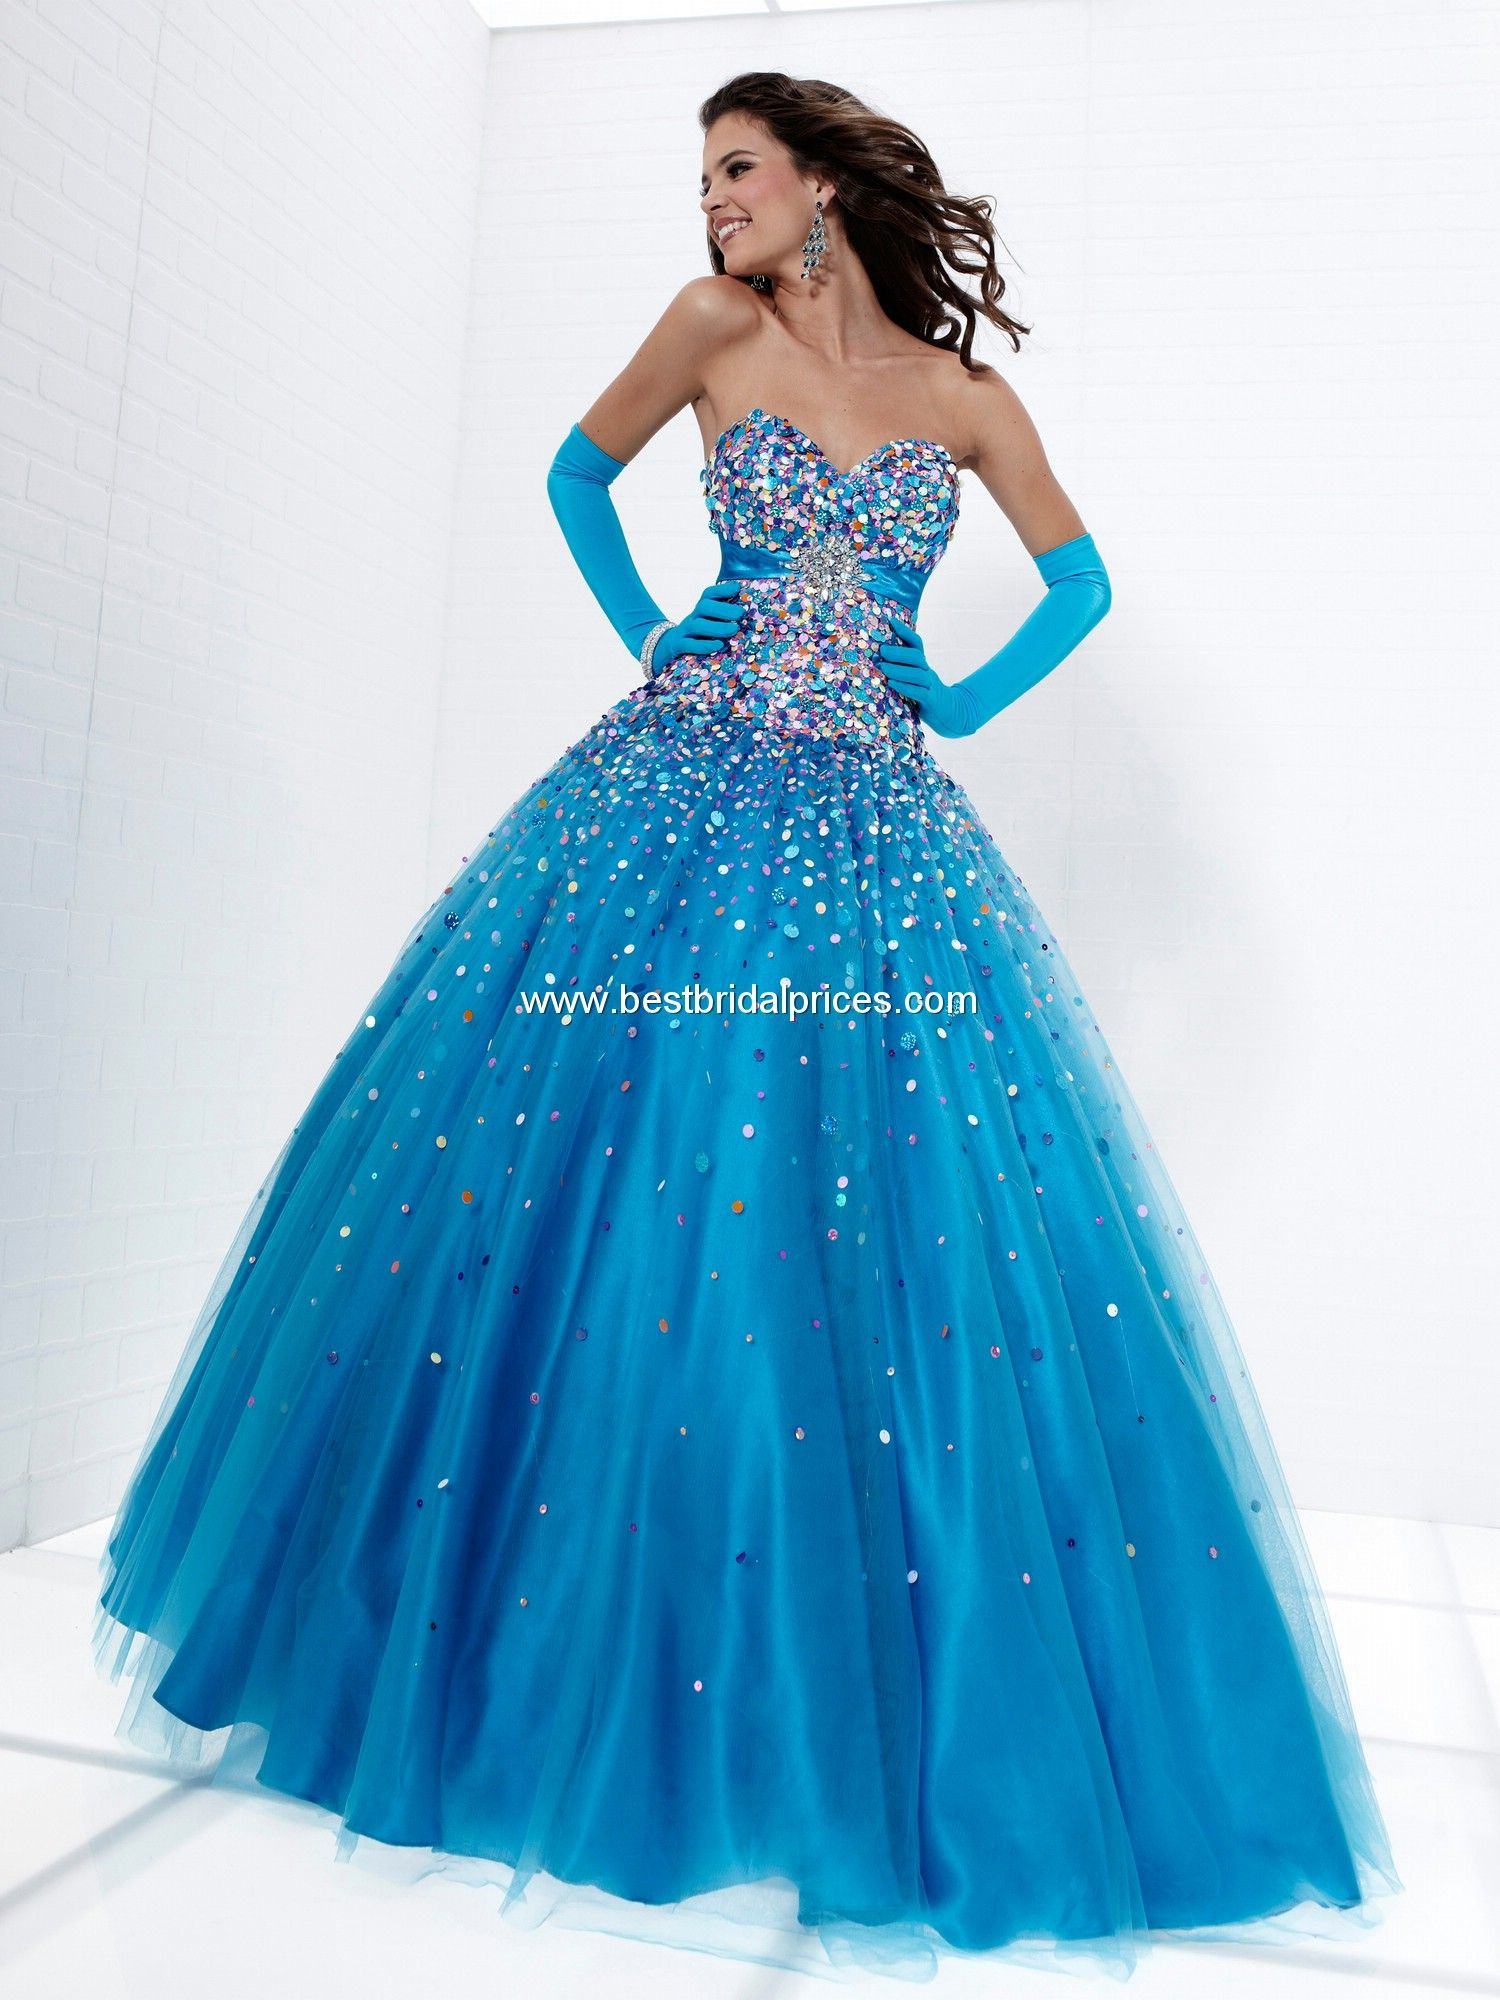 17 Best images about Beautiful Gowns on Pinterest | Evening ...